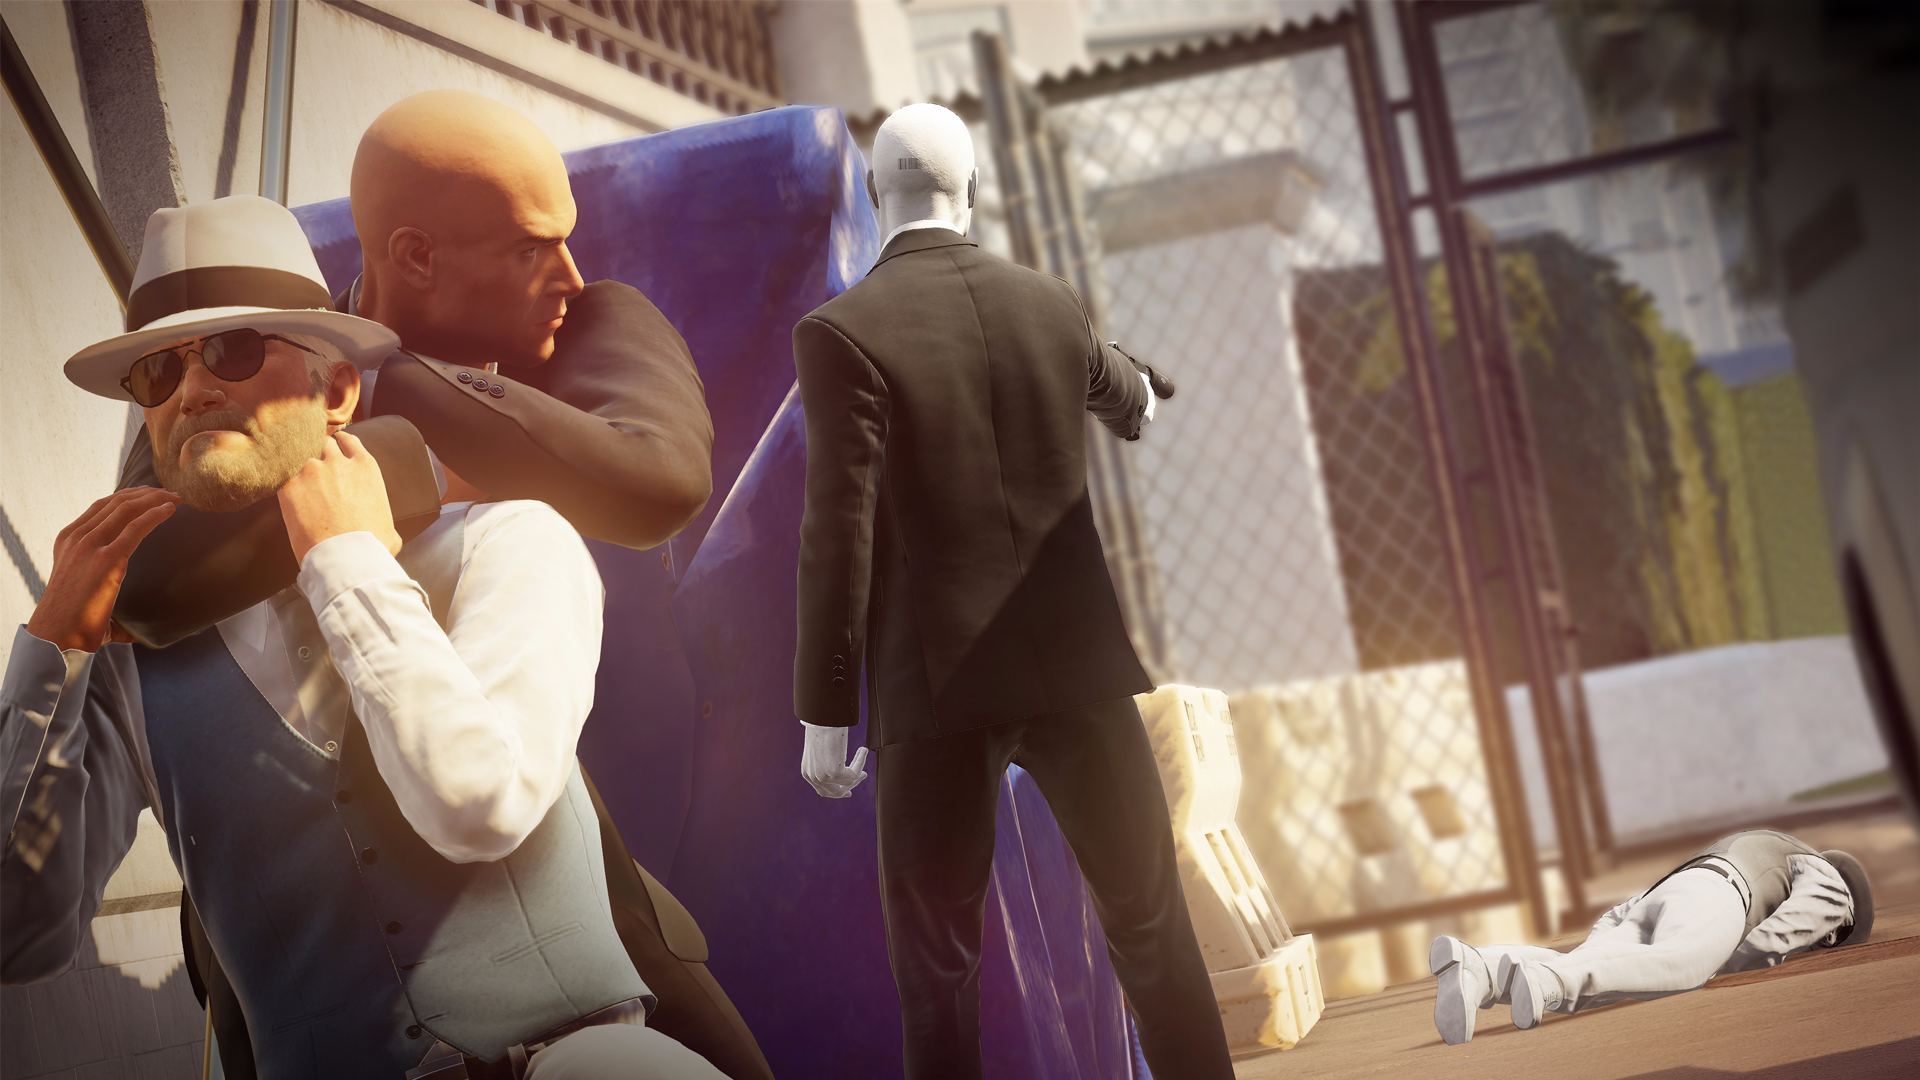 Hitman 2 will feature a 1v1 online competitive mode called Ghost Mode